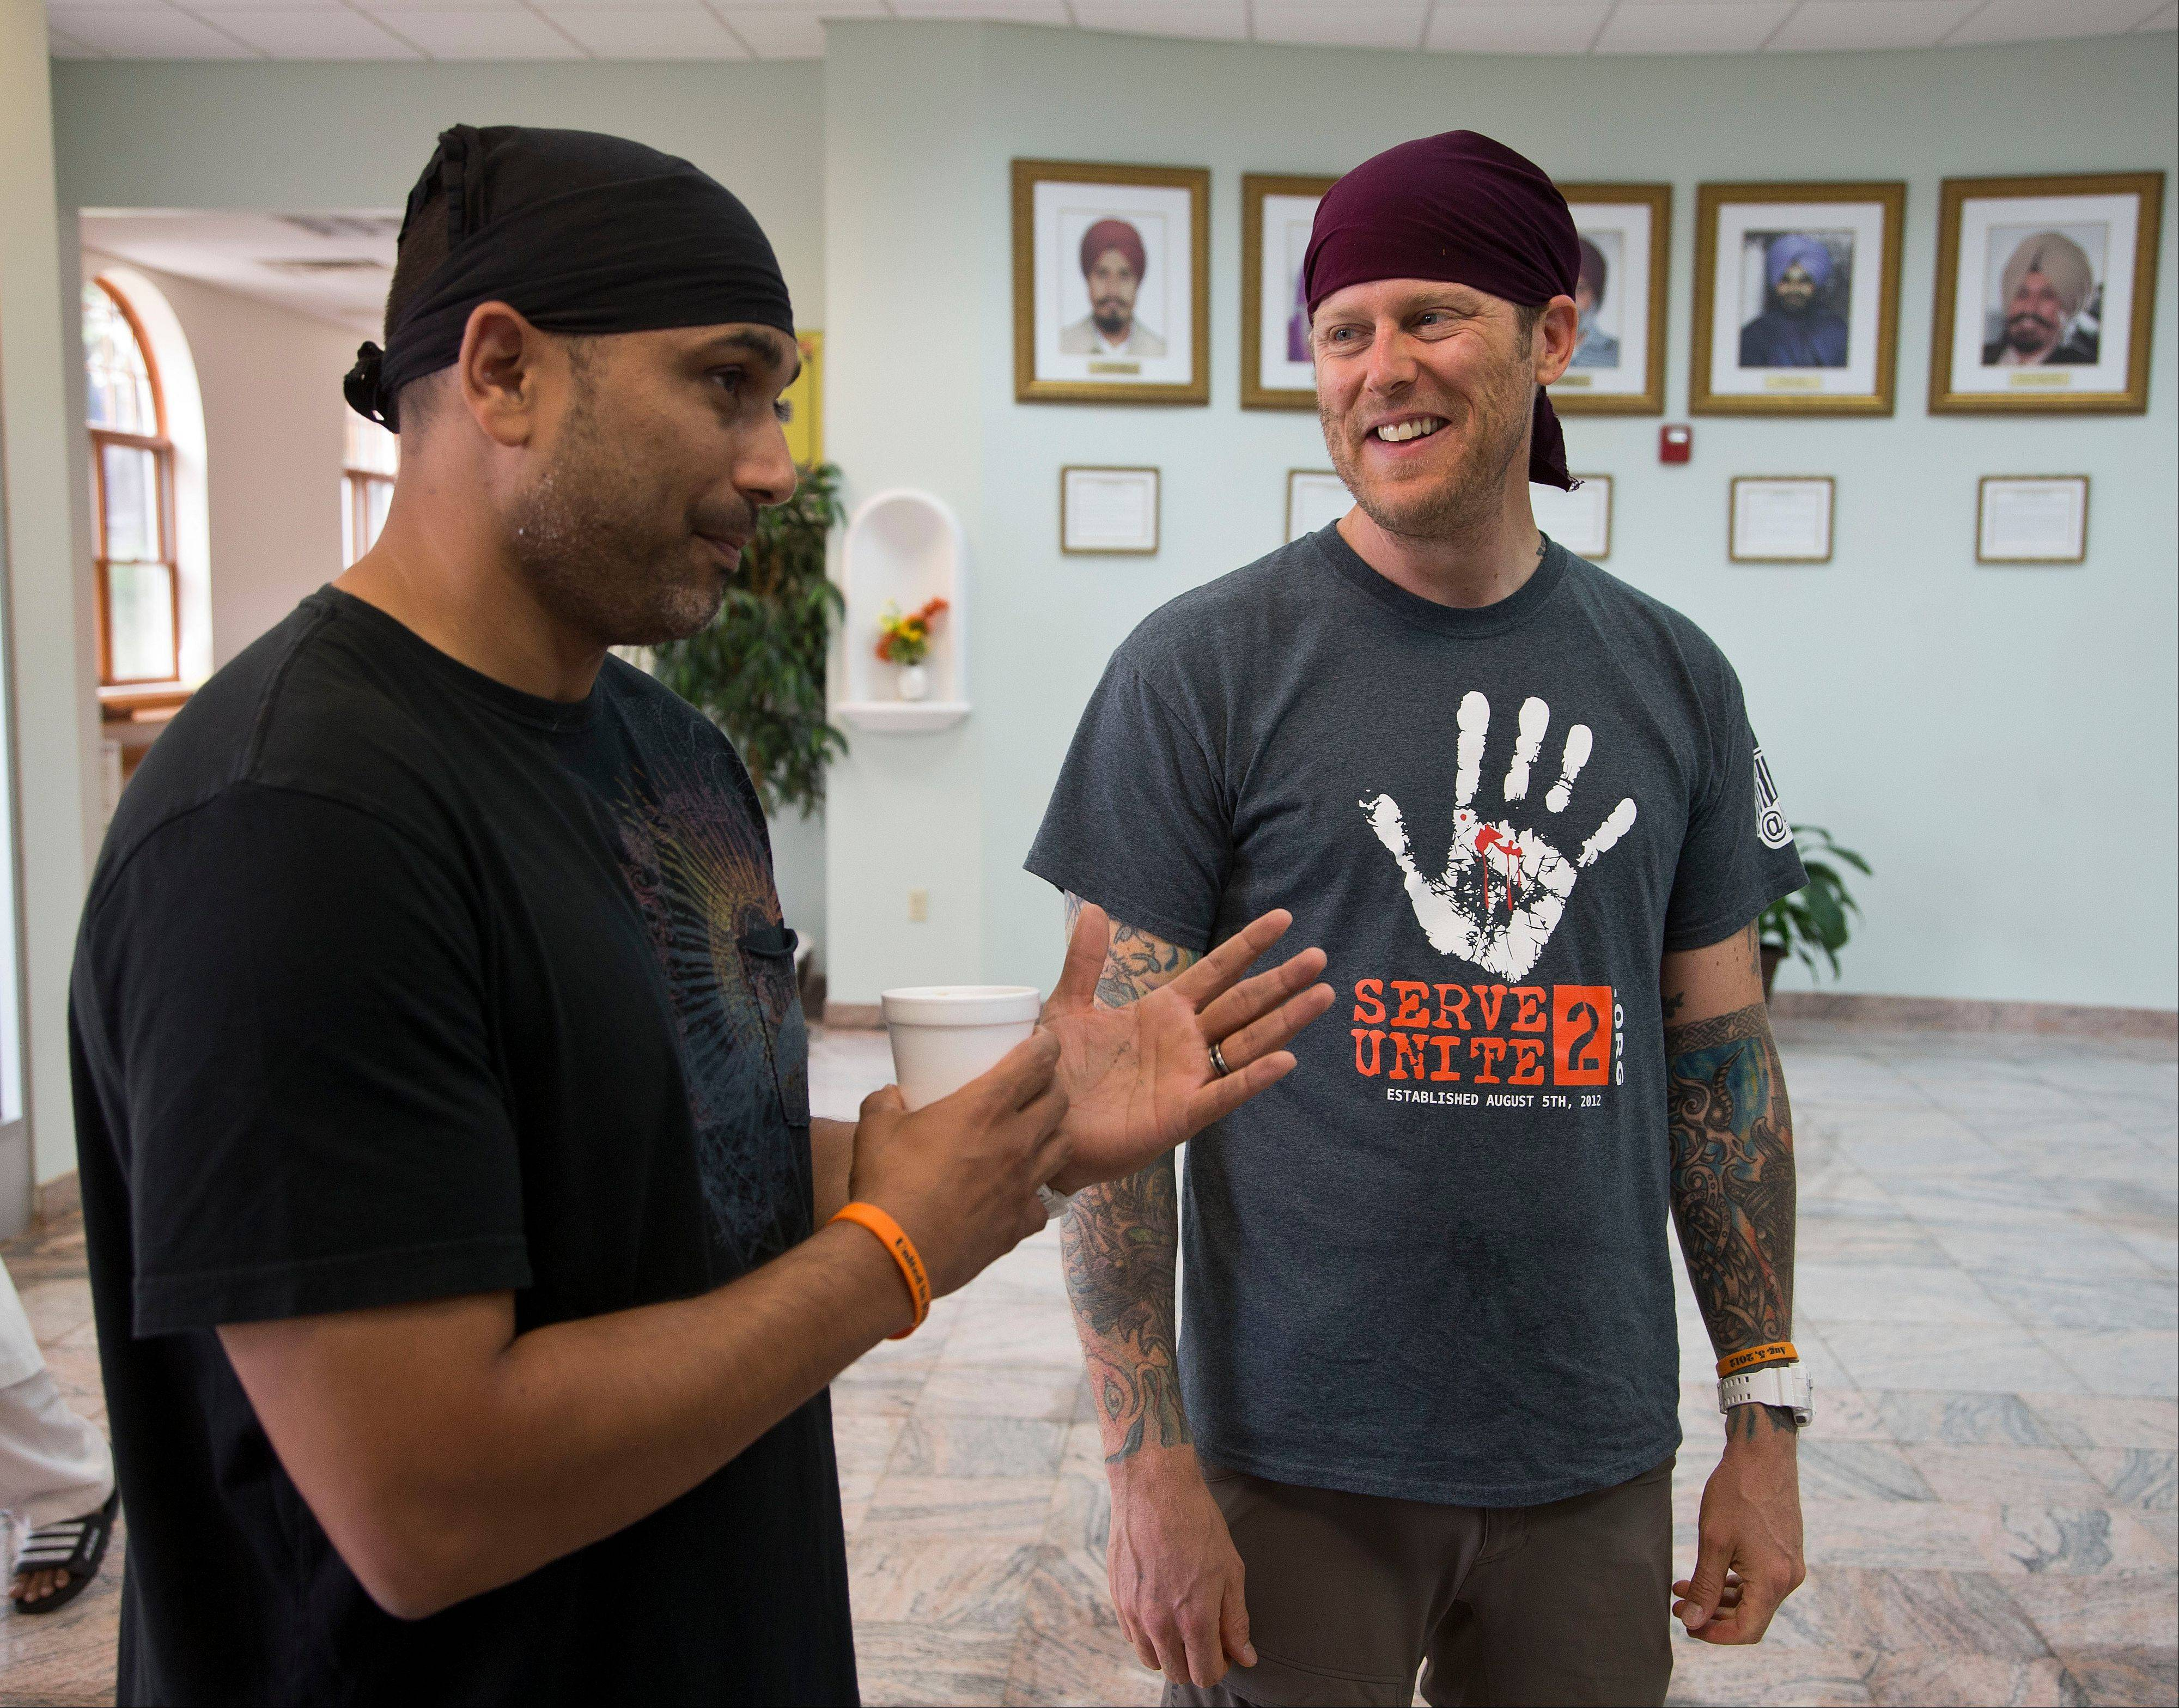 Pardeep Kaleka, left, and Arno Michaelis talk at the Sikh Temple of Wisconsin in Oak Creek, Wis. A year ago a white supremacist shot and killed six temple members, including Kaleka's father.